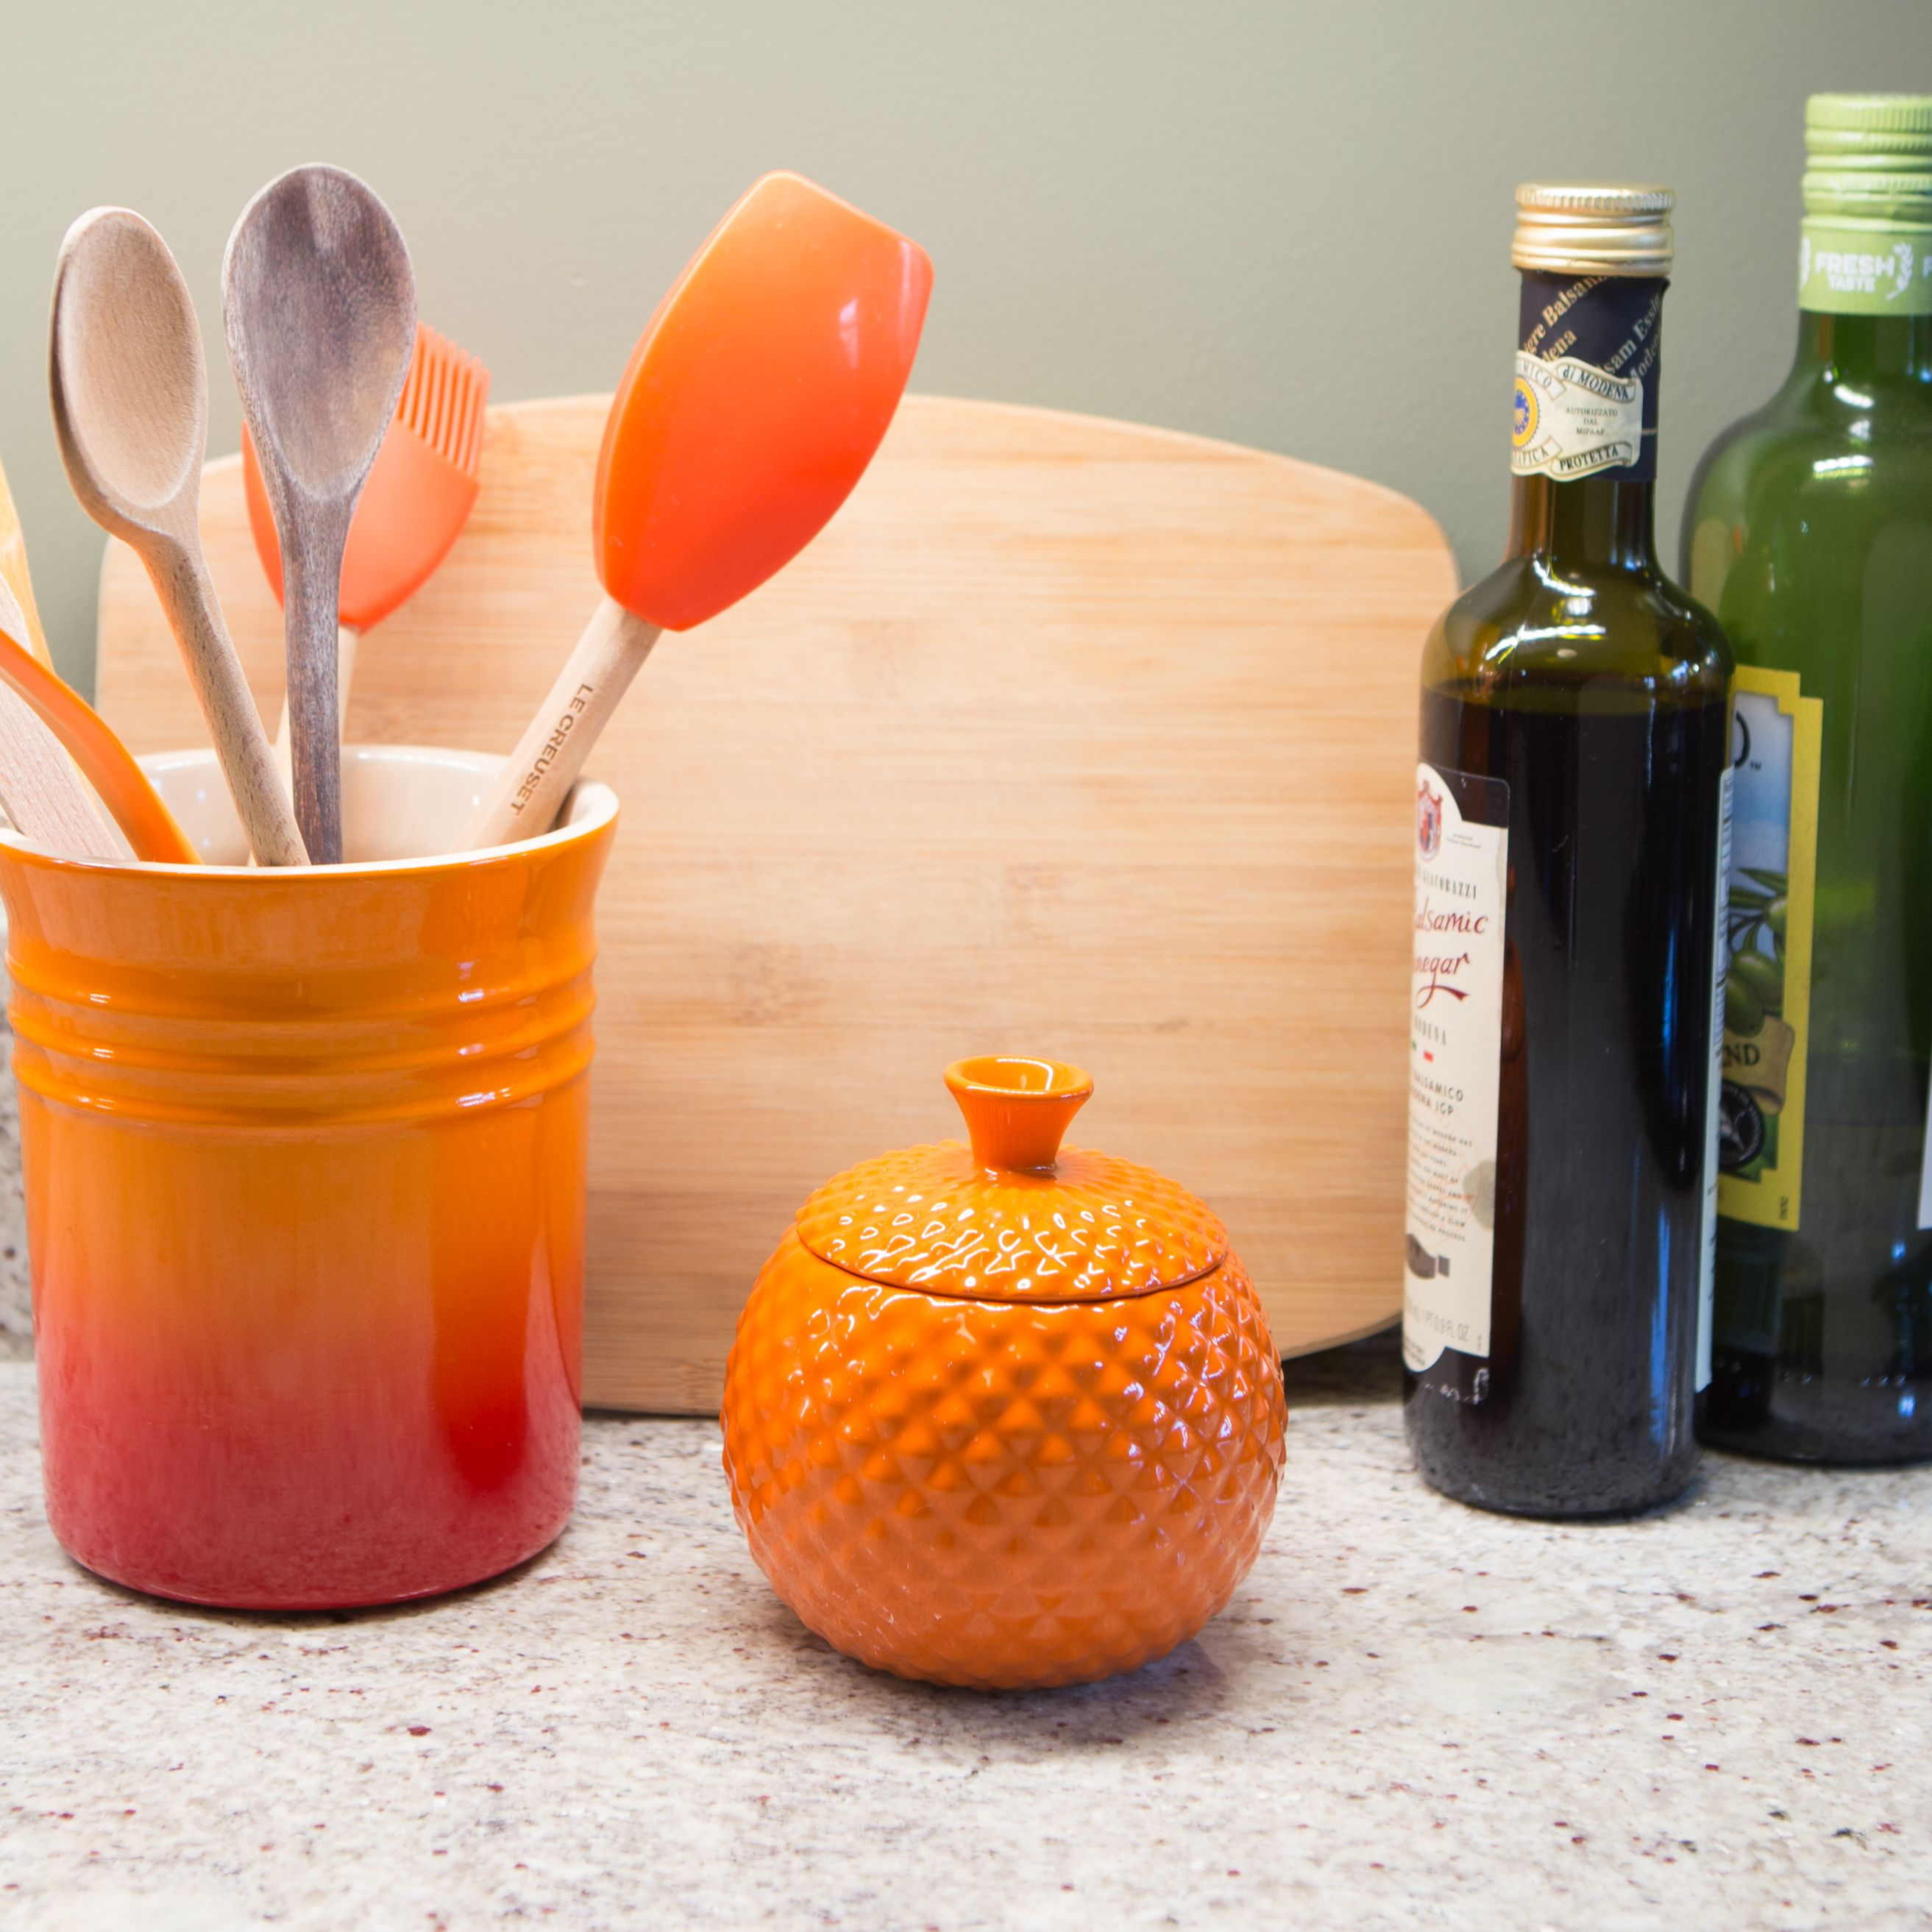 This fruit fly gnat catcher trap is a natural effective and